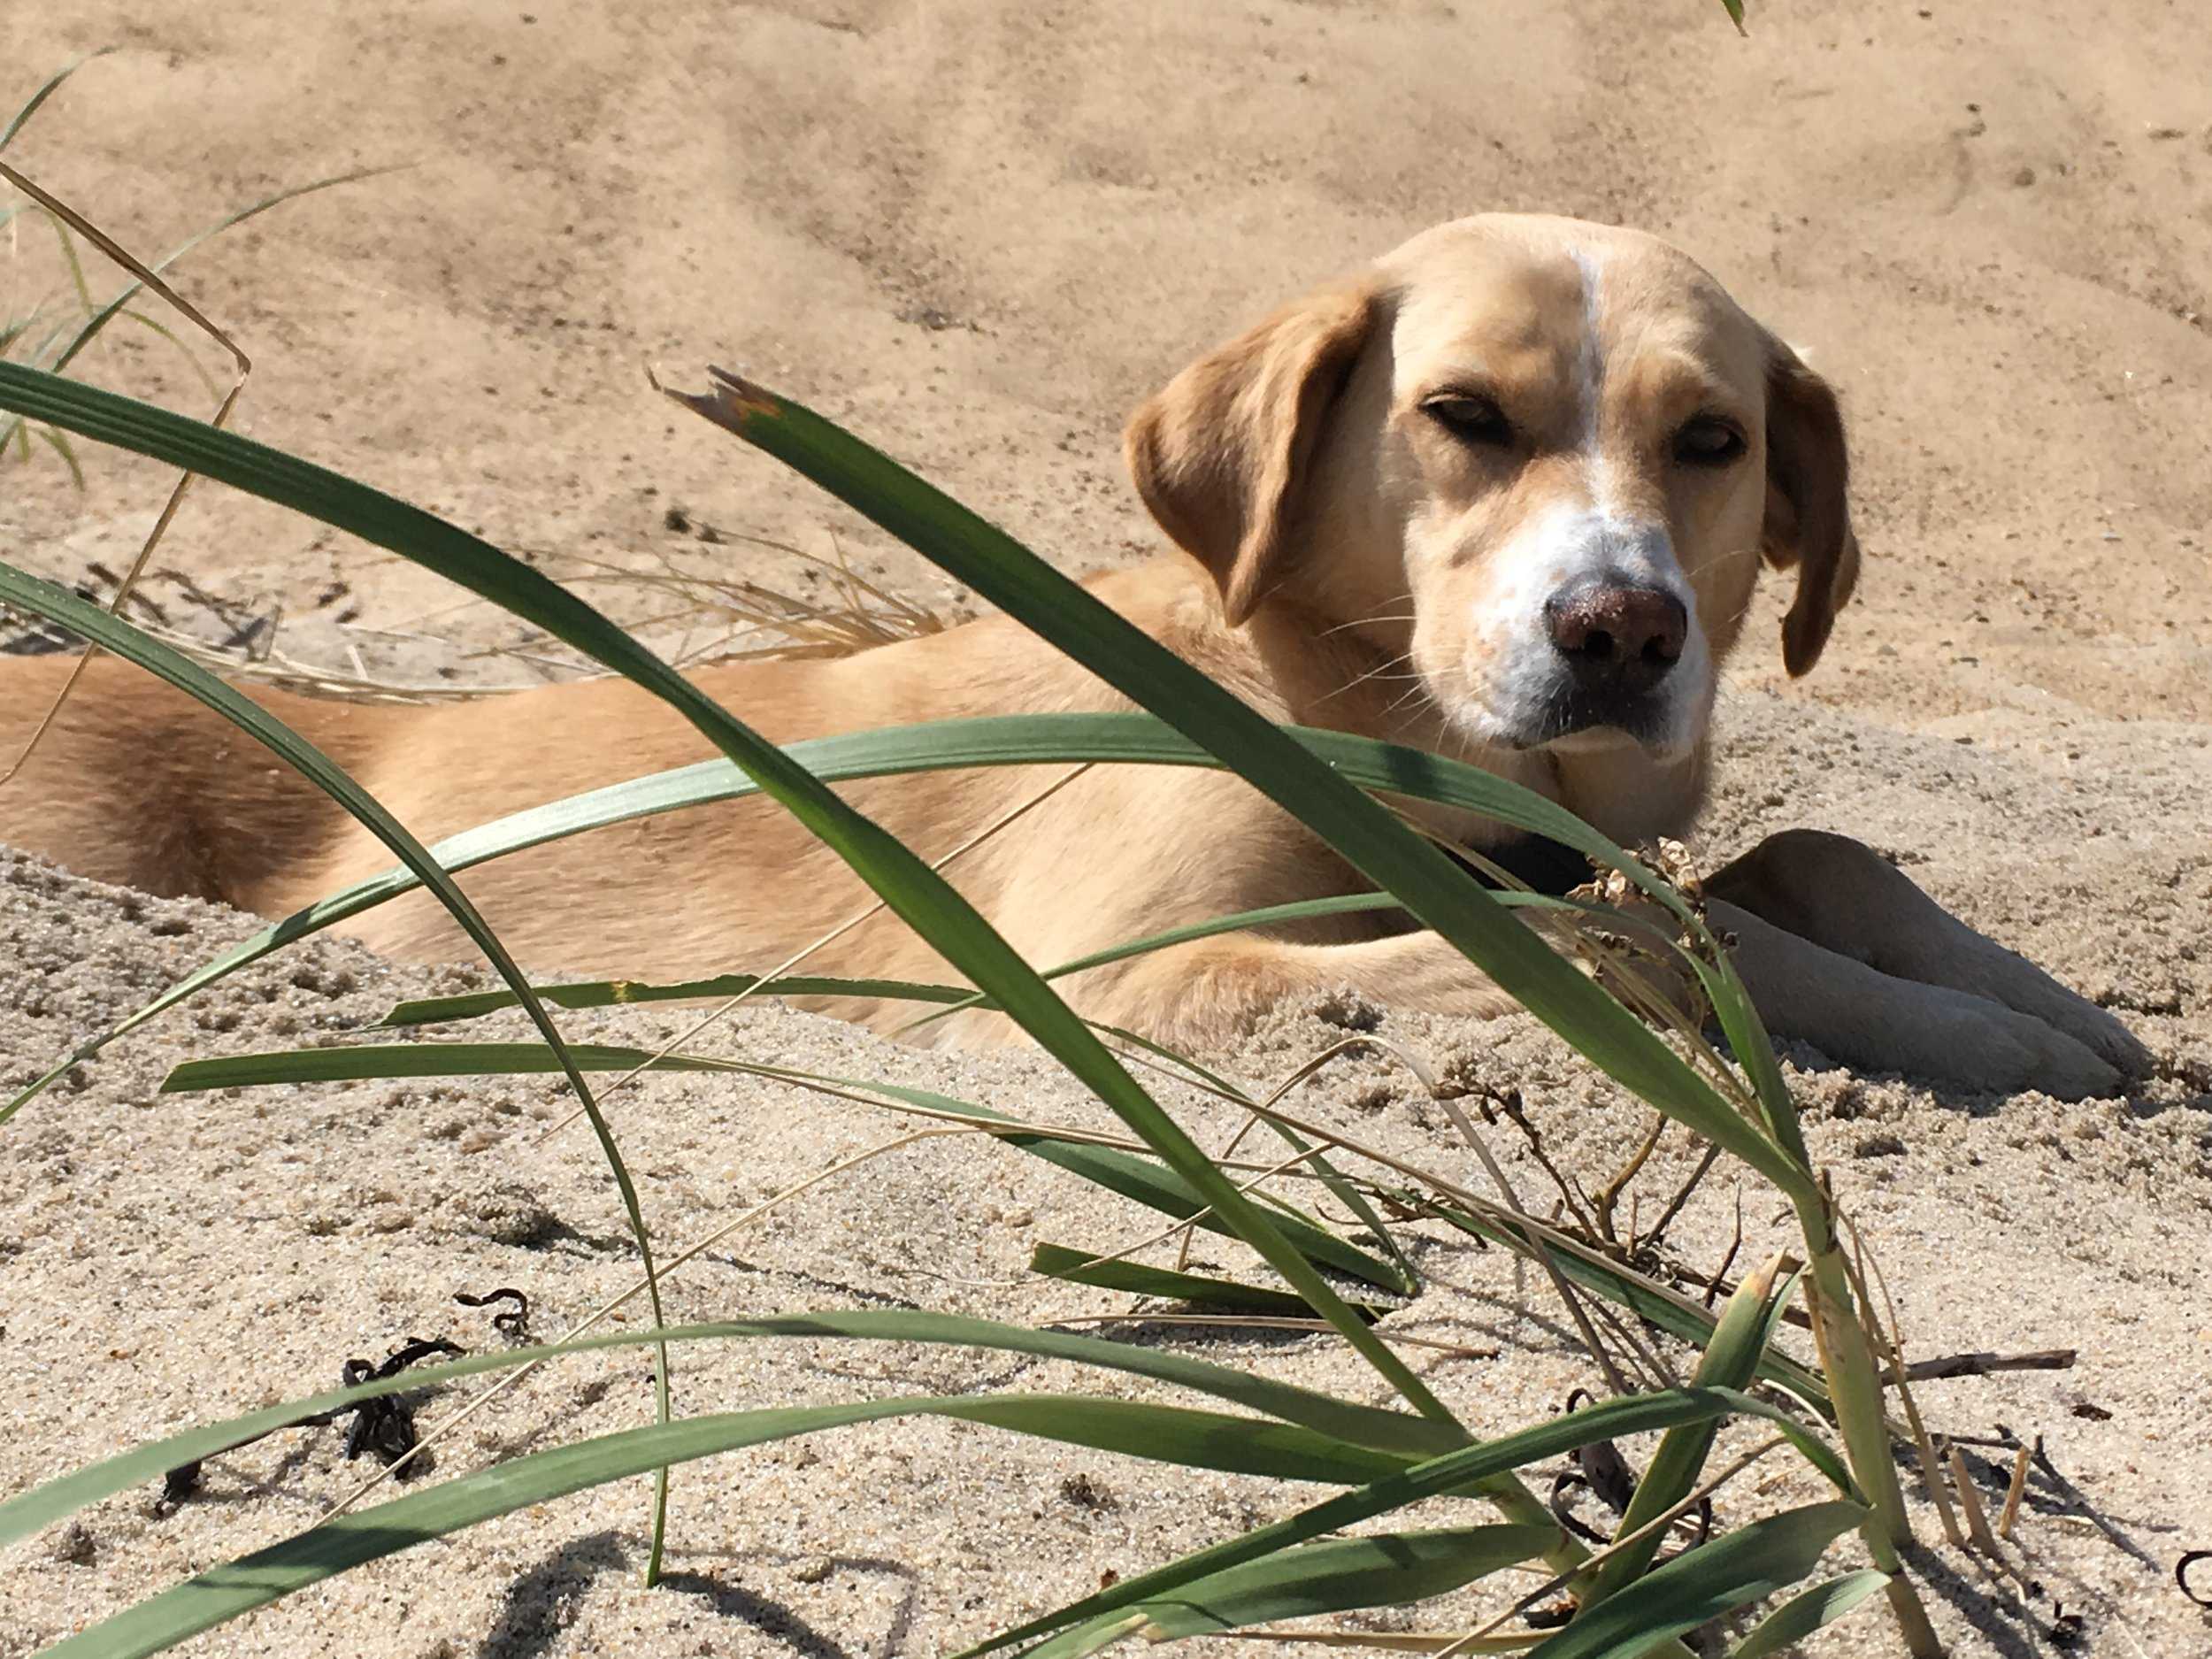 Juno, who would like our beaches to stay right where they are, thank you, submitted by Mike